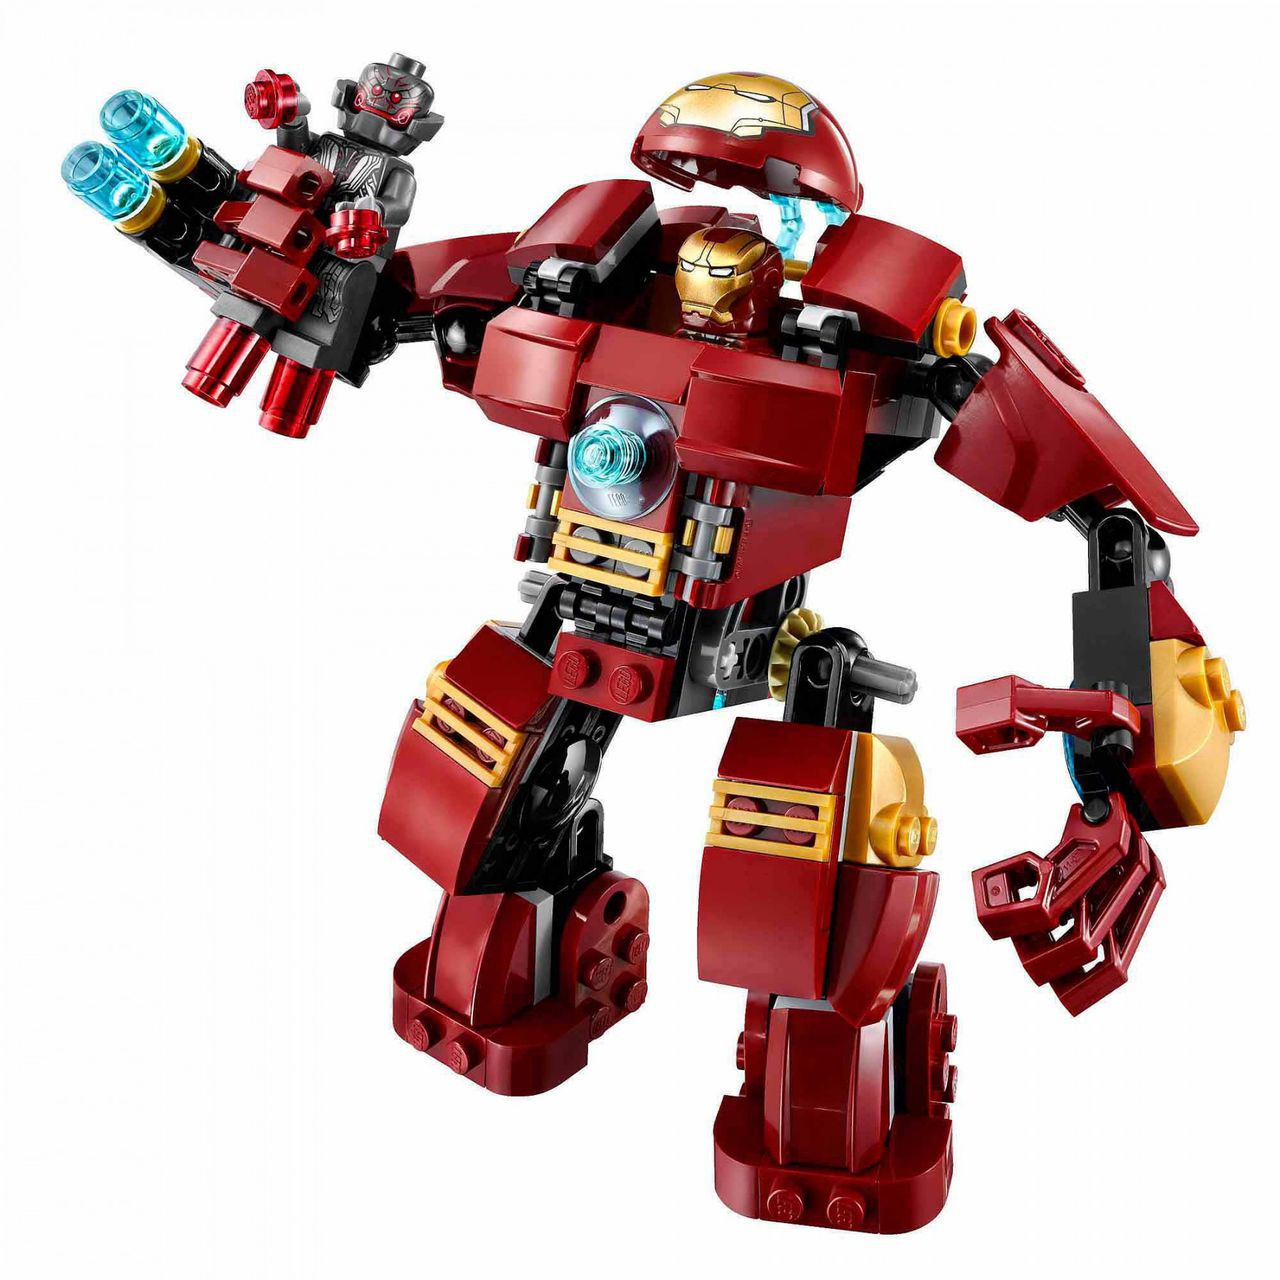 Lego Marvel Super Heroes 76031 The Hulk Buster Smash 76031